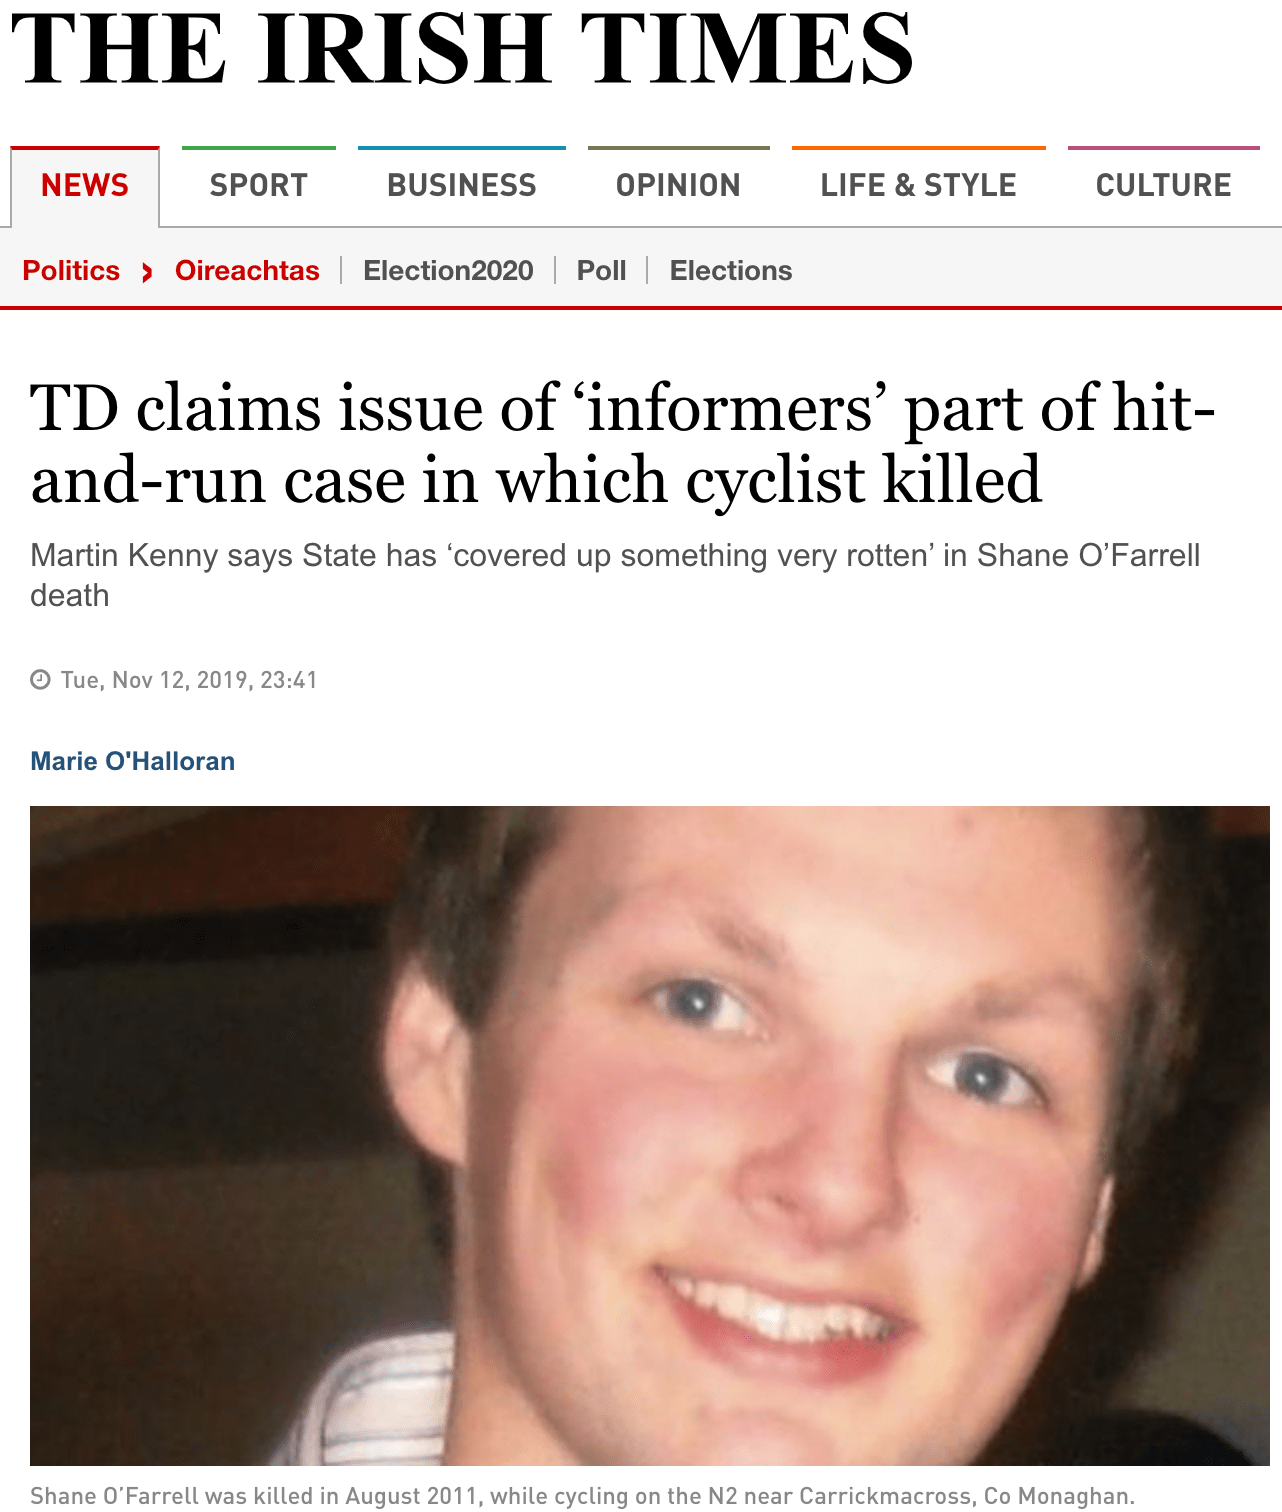 12.11.19 – TD claims issue of 'informers' part of hit-and-run case in which cyclist killed – The Irish Times